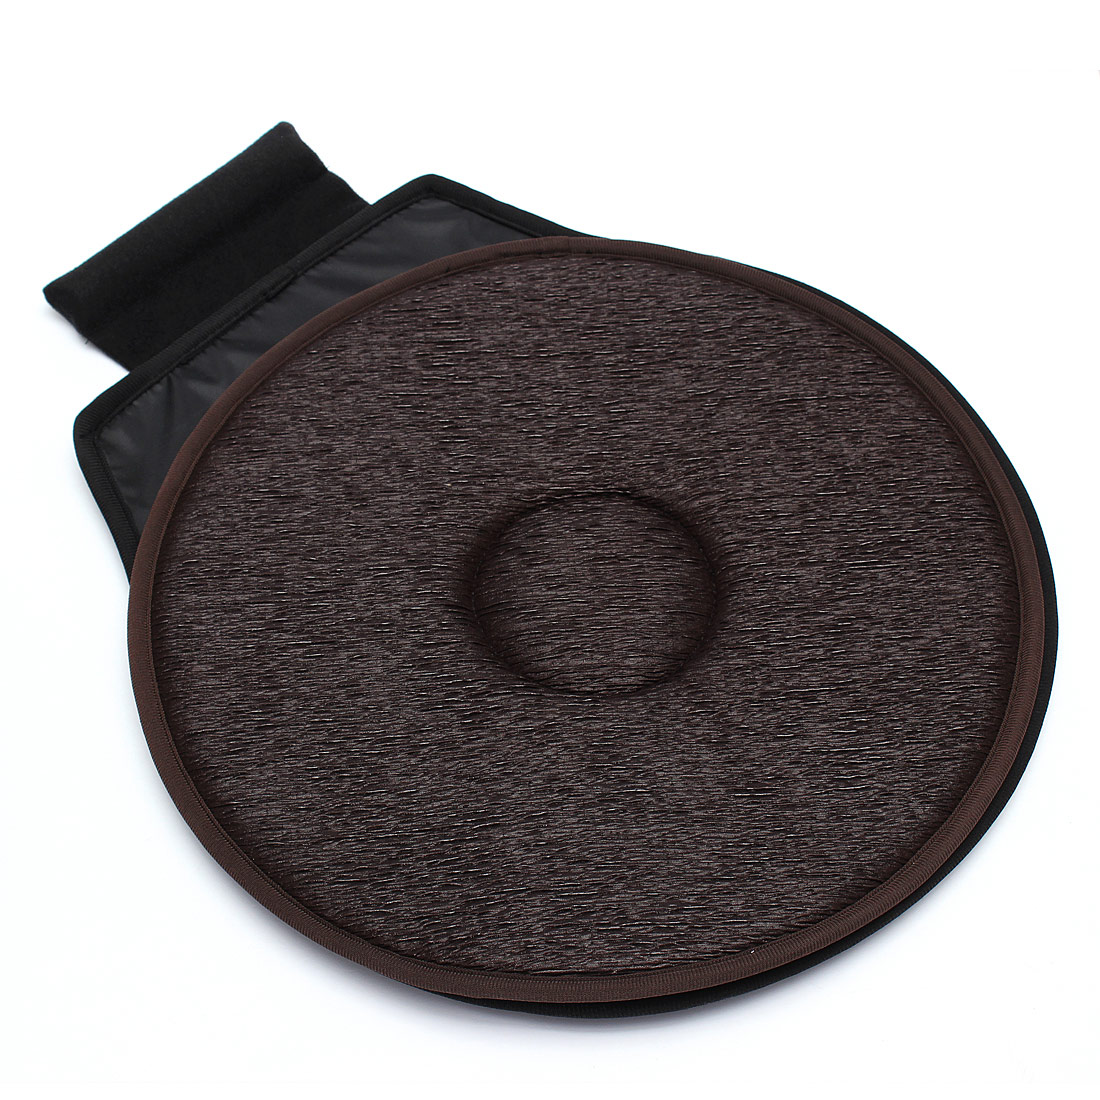 Non-slip Car Seat Revolving Rotating Cushion Swivel Foam Mobility Aid seat cushion in chair Tie On Pad Dark brown-VIP link